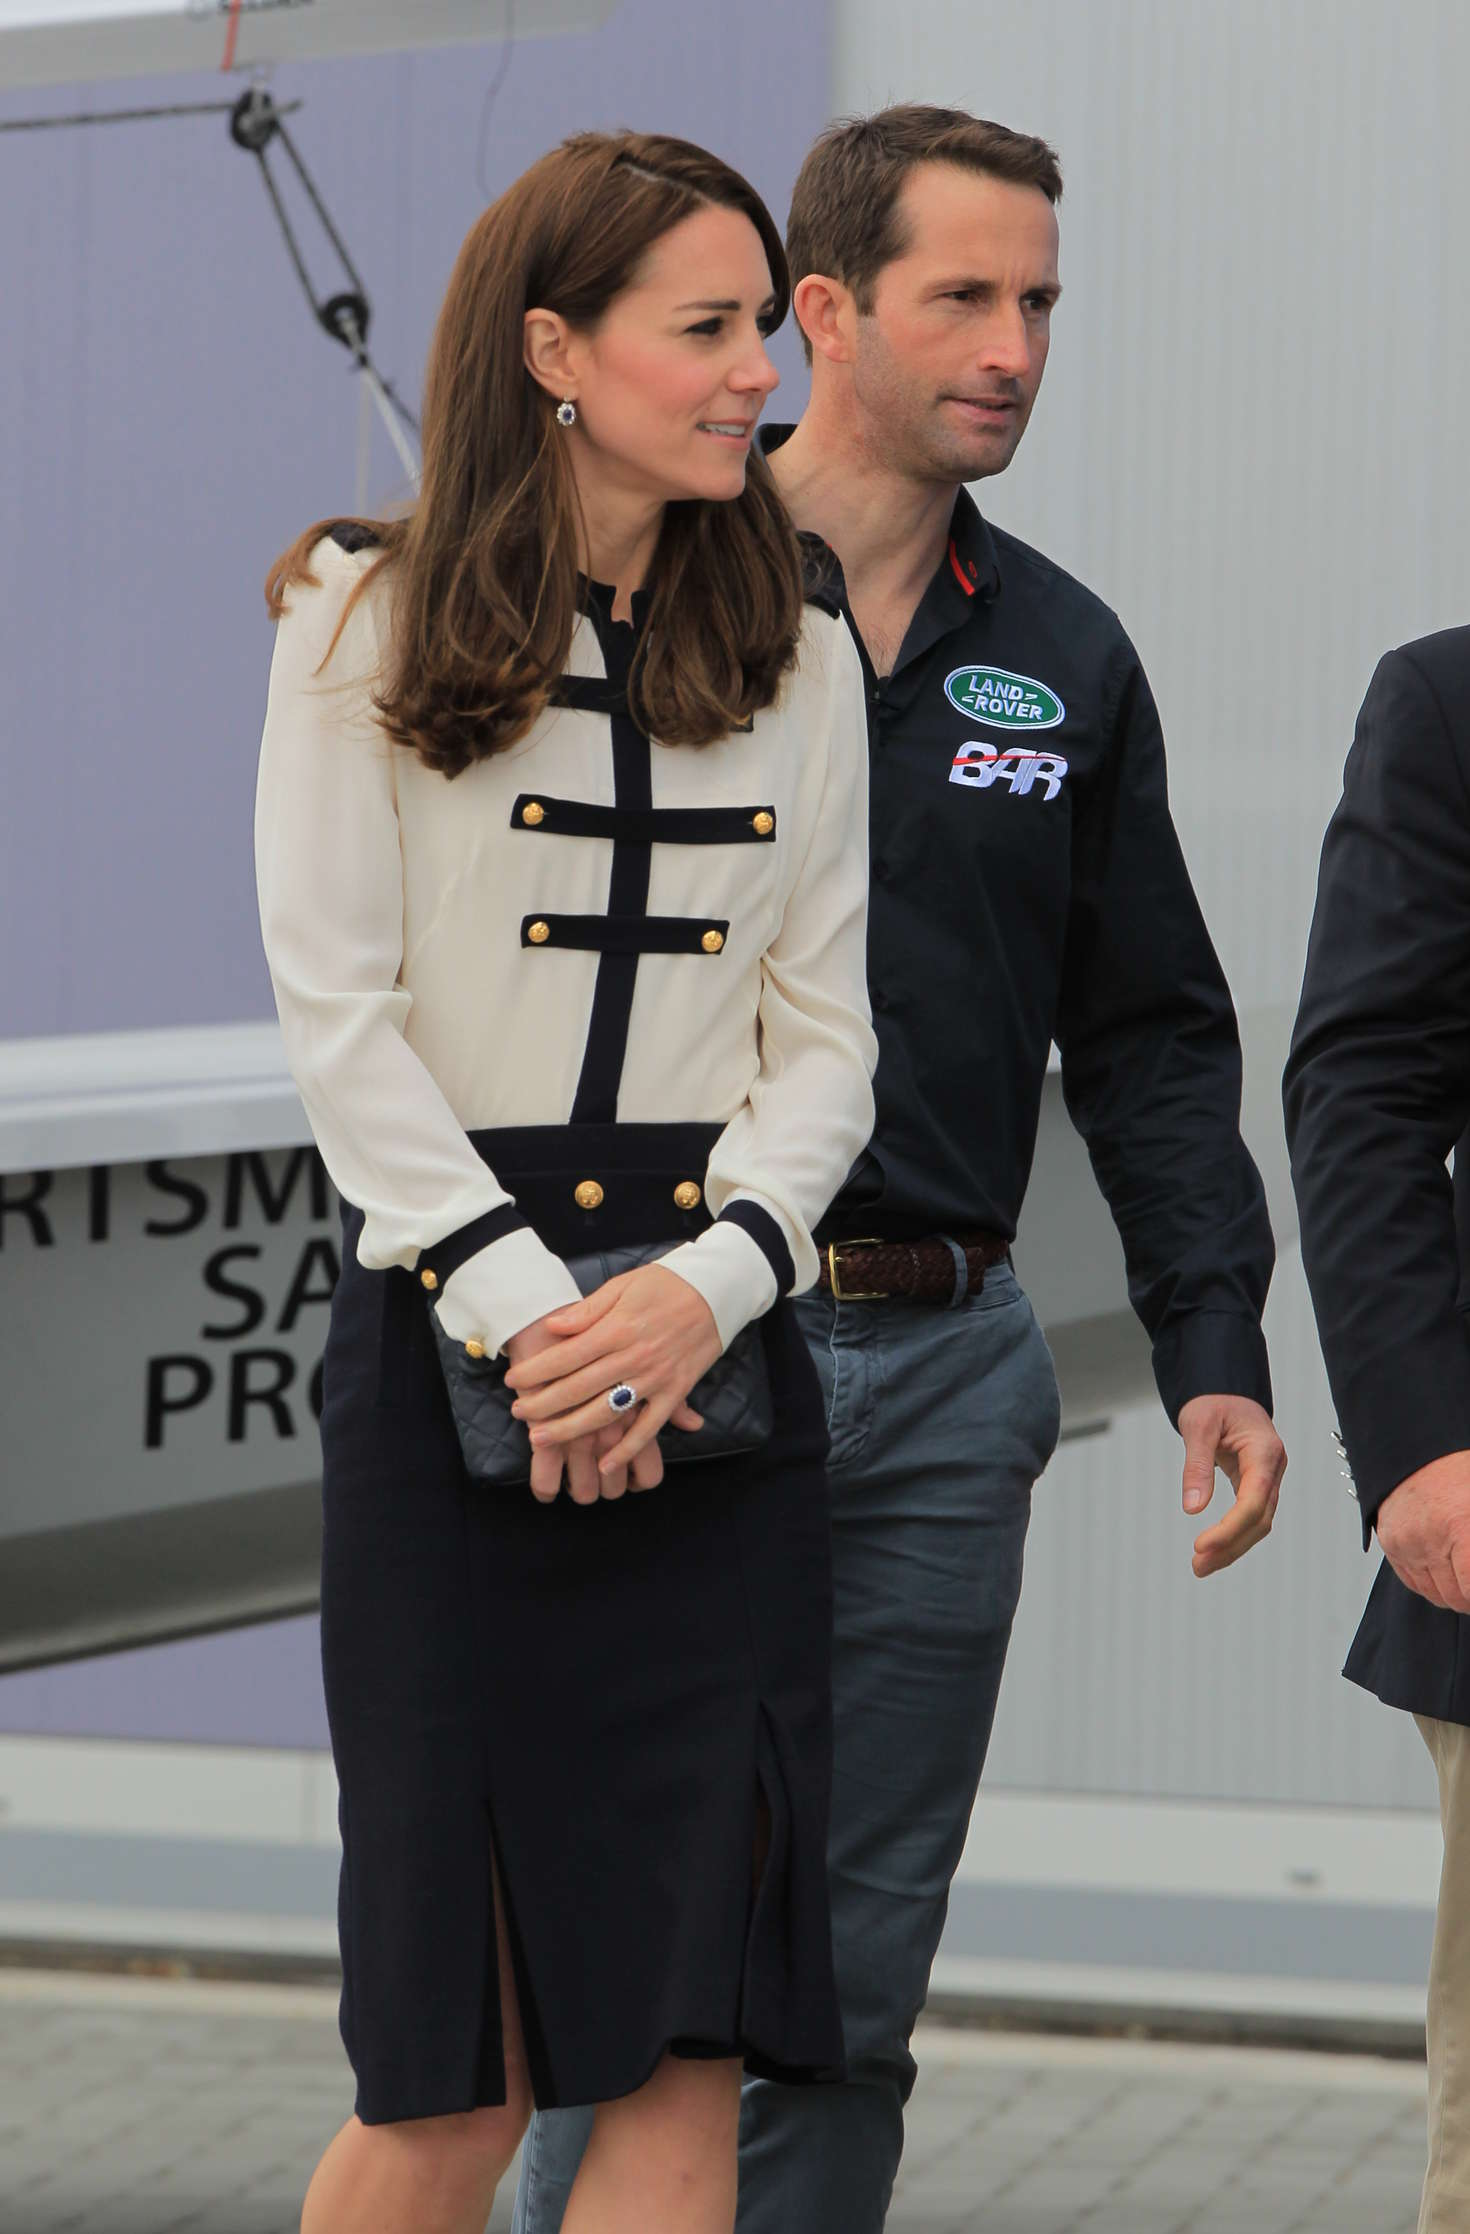 Kate Middleton Visit The Crew Of Bar Land Rover America